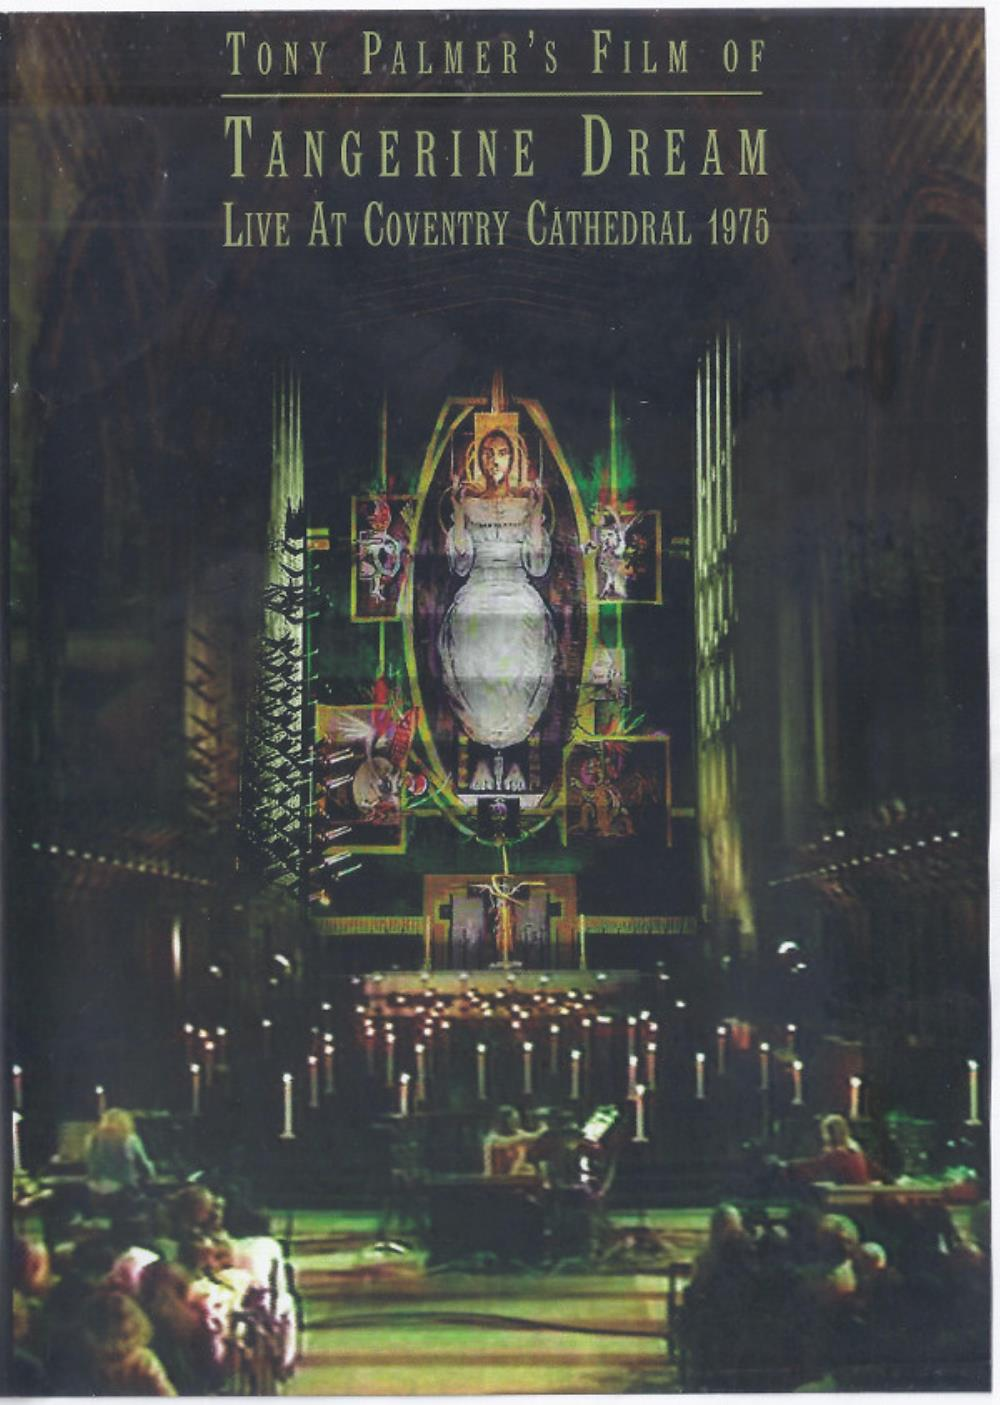 Tangerine Dream Live at Coventry Cathedral 1975 album cover